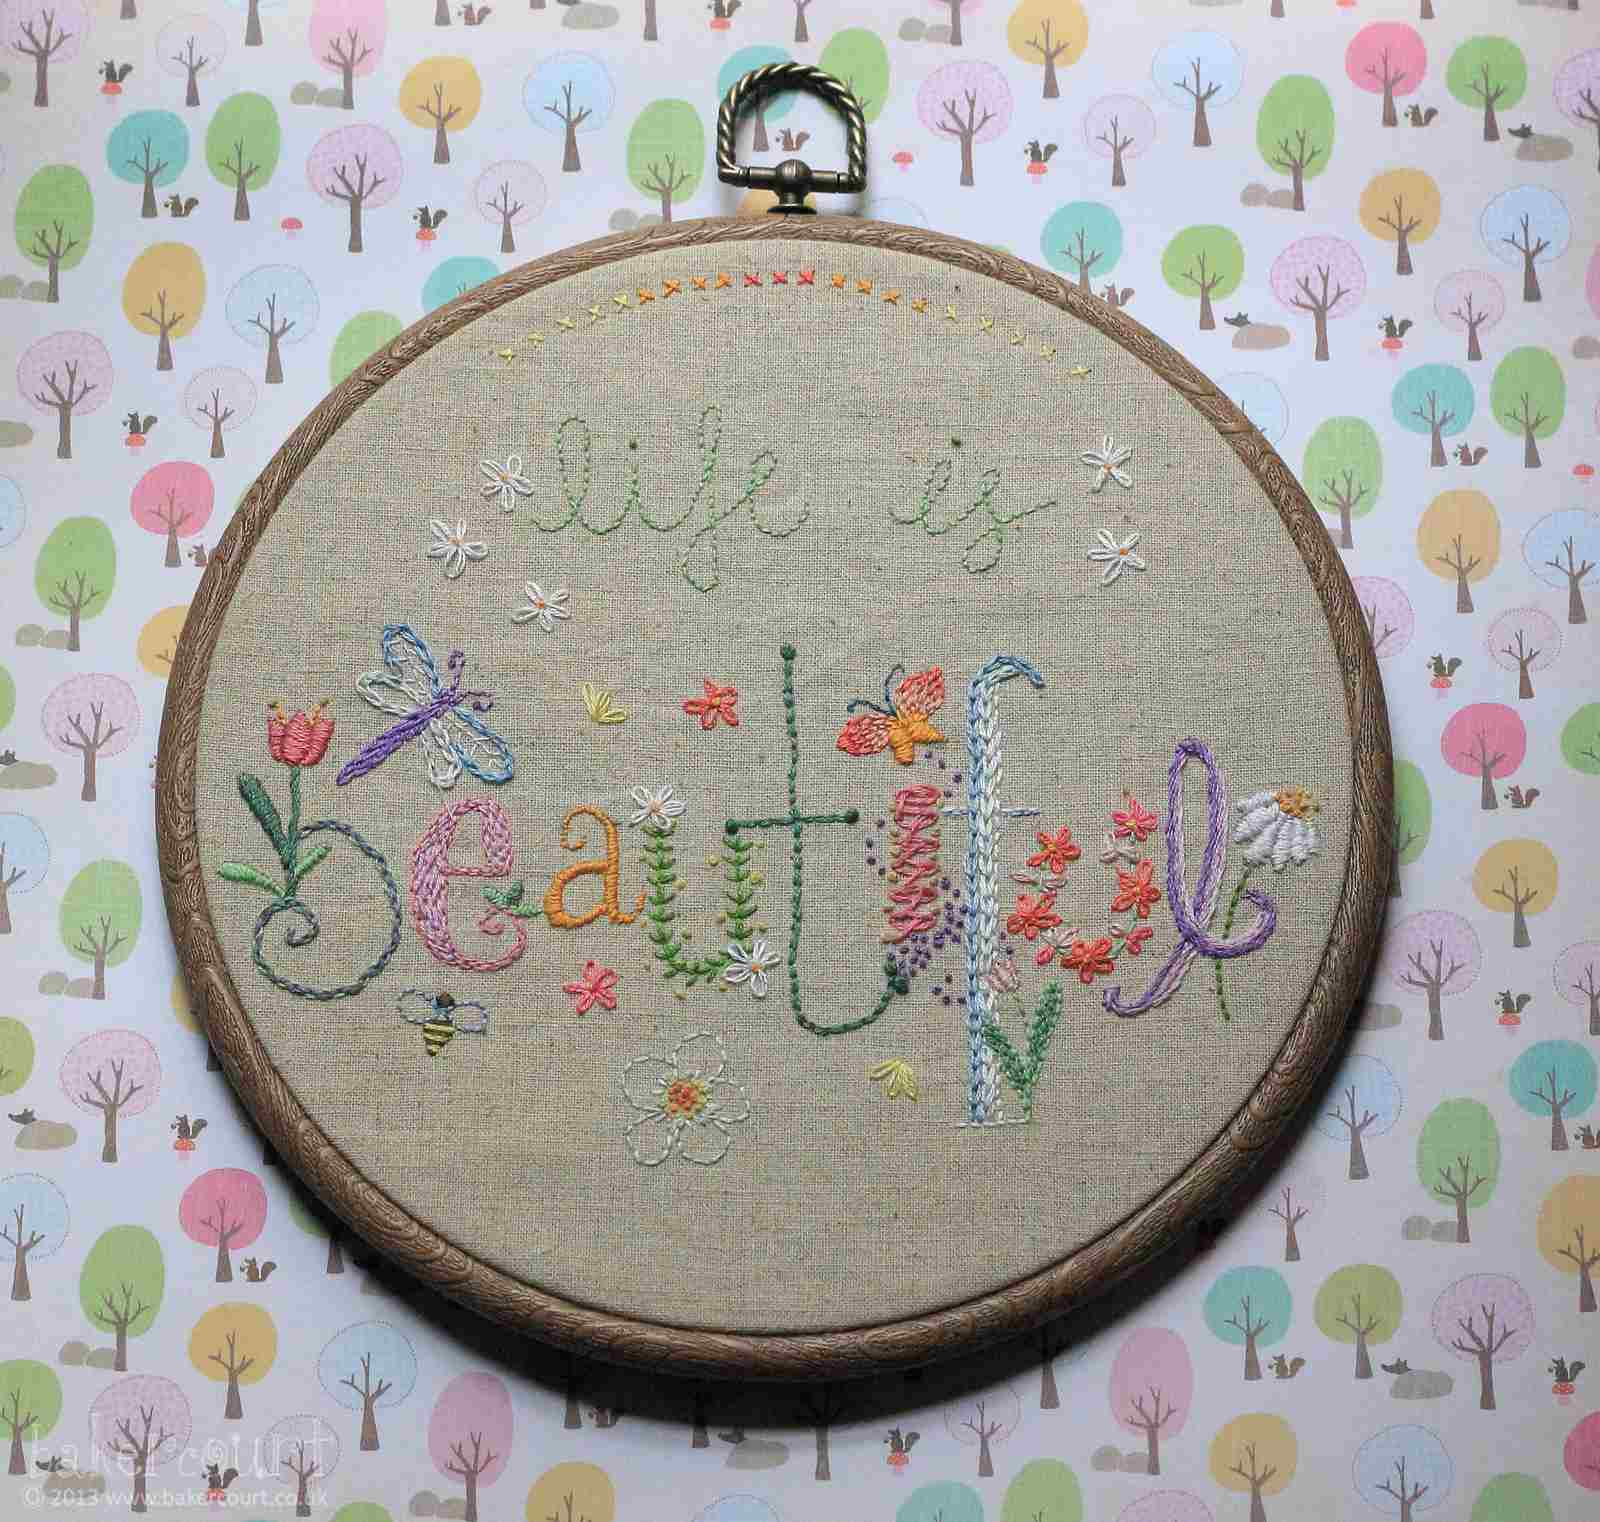 Embroidery Sampler Patterns Free 8 Embroidery Sampler Patterns